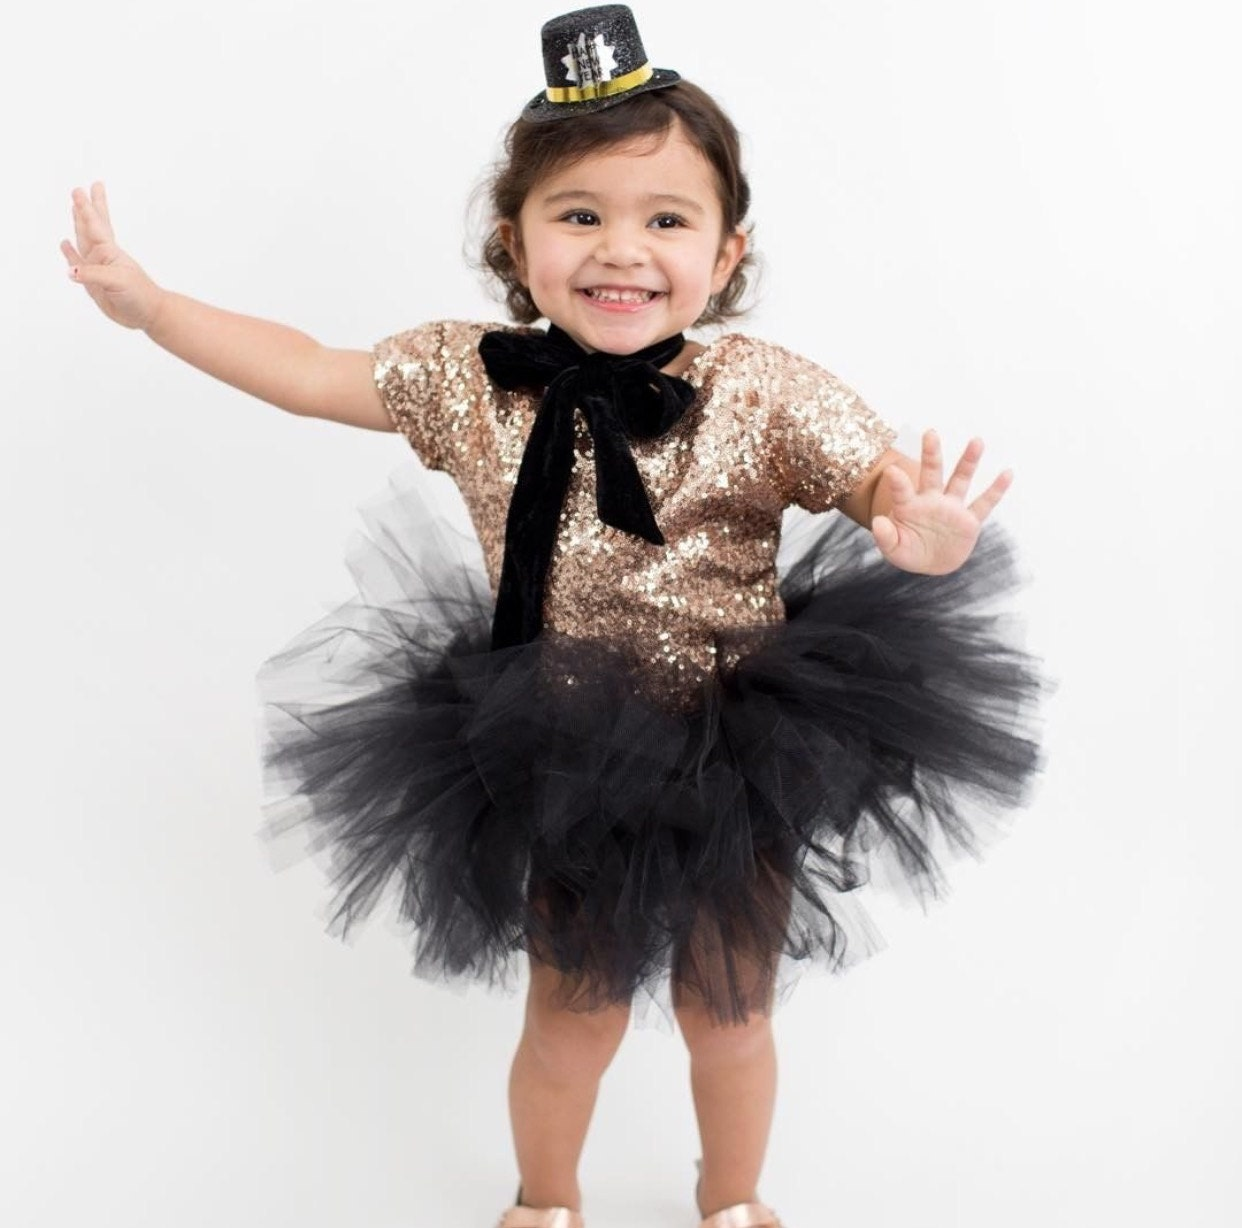 Discover adorable tutus and tutu dresses for girls and toddlers on zulily. Save up to 70% on cute floral, themed and lace tutu dresses for kids and babies.